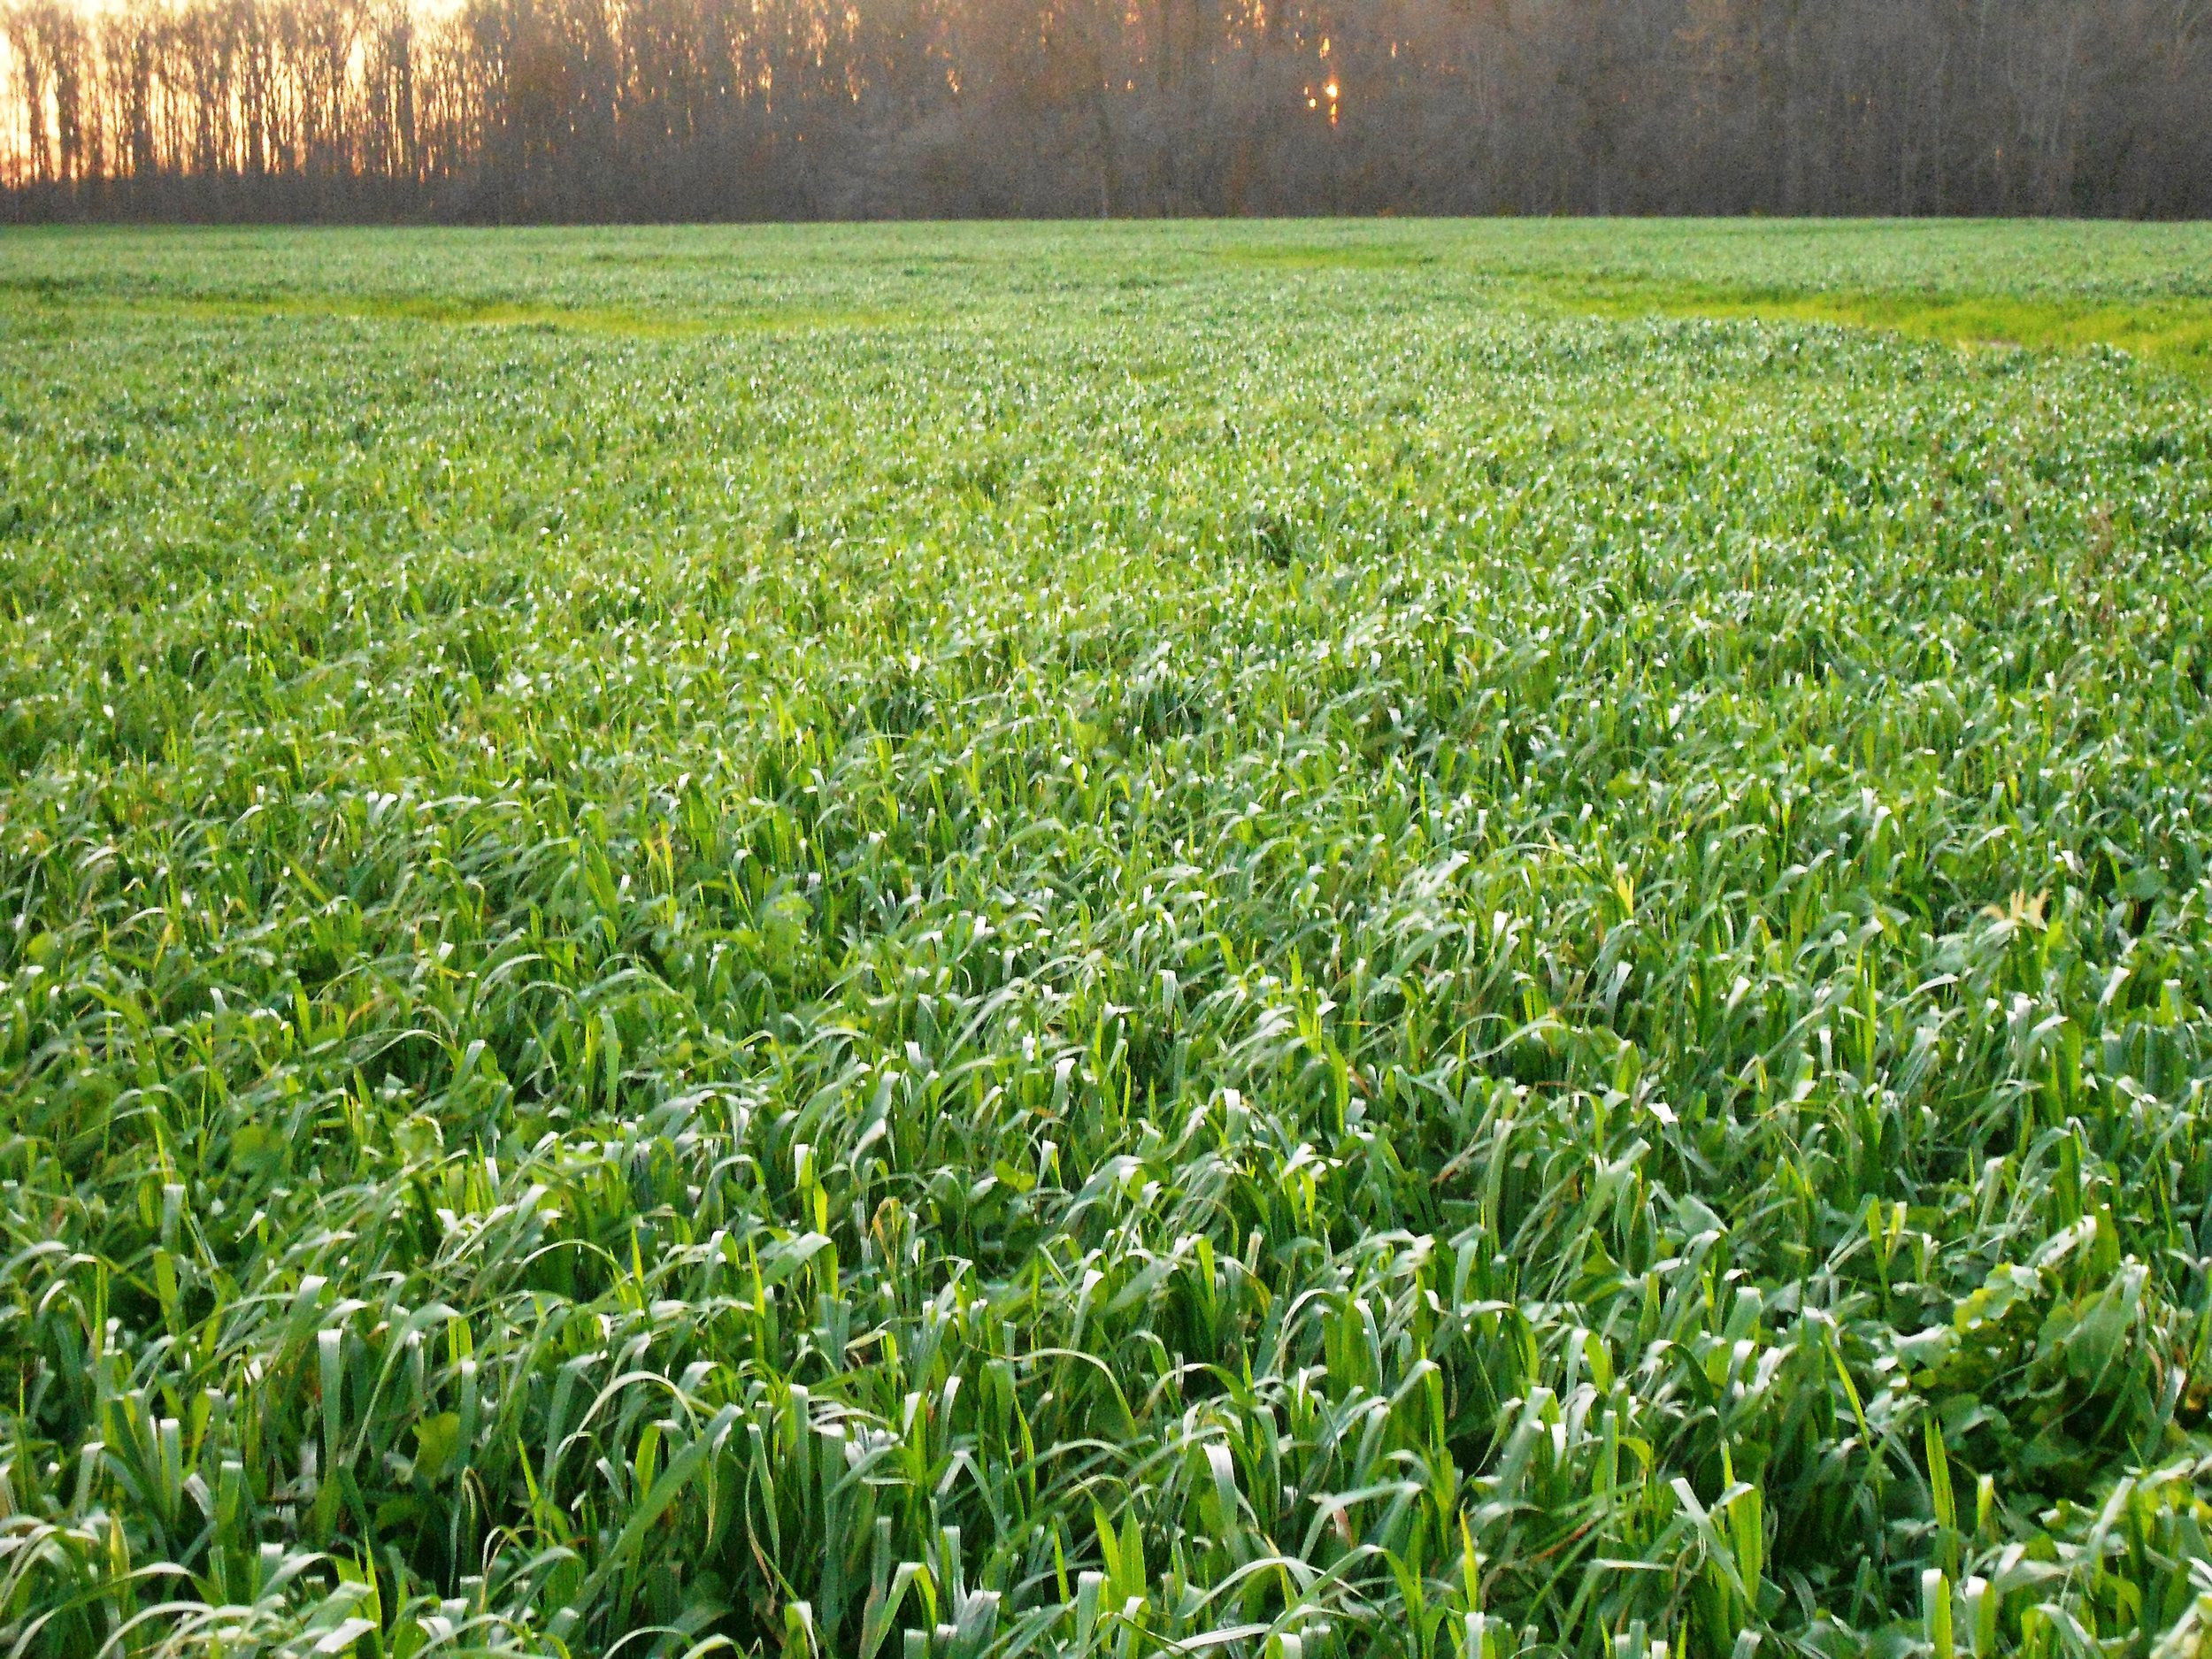 Elbon cereal Rye Cover Crops